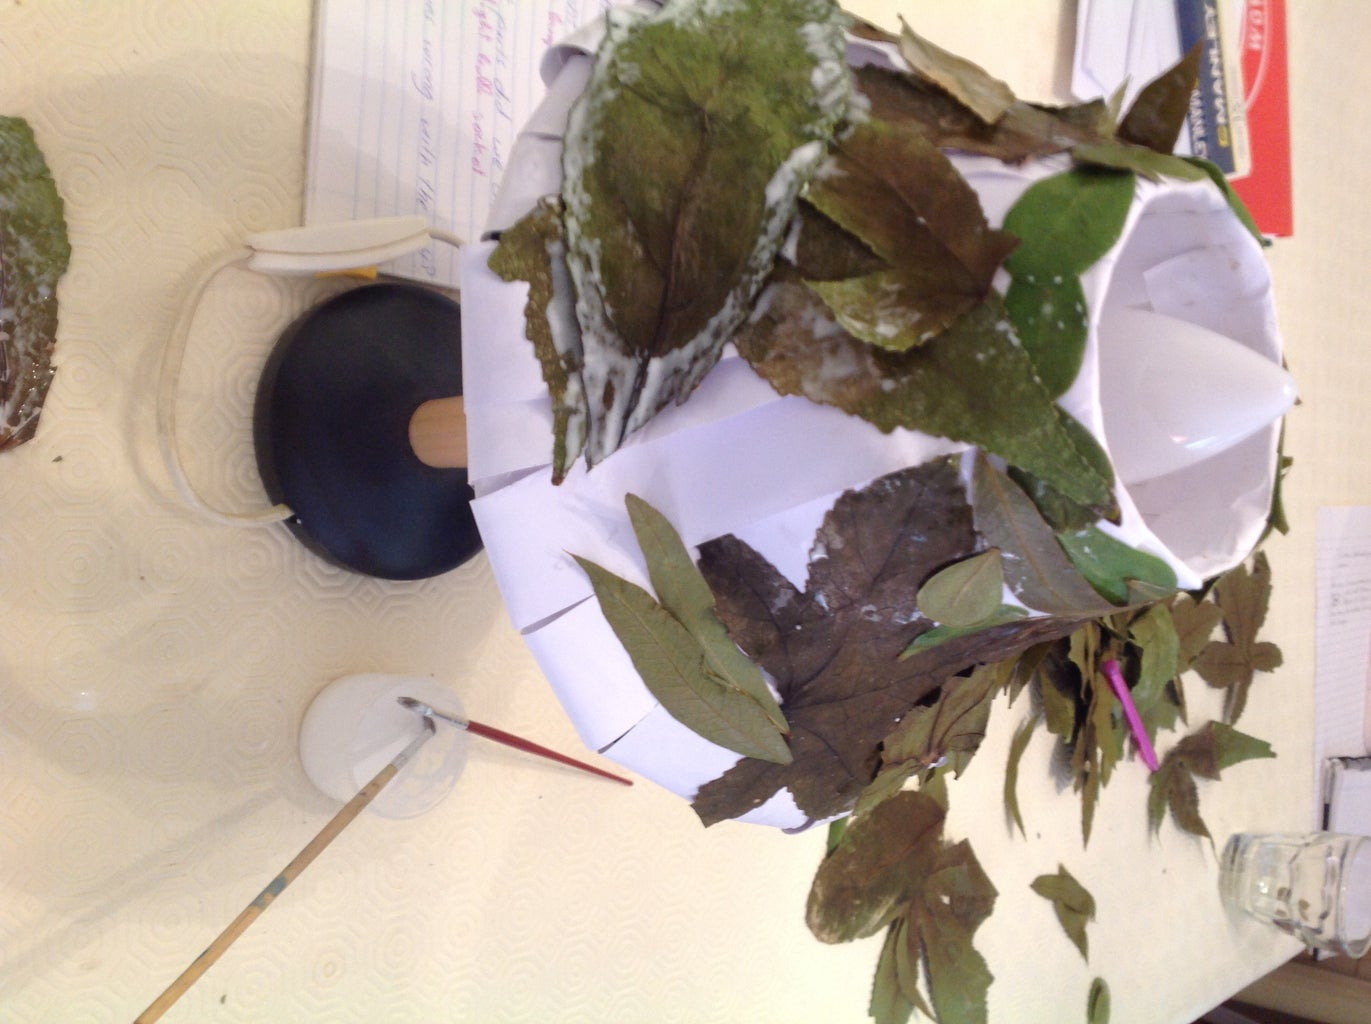 Glue the Leaves on the Paper Shade